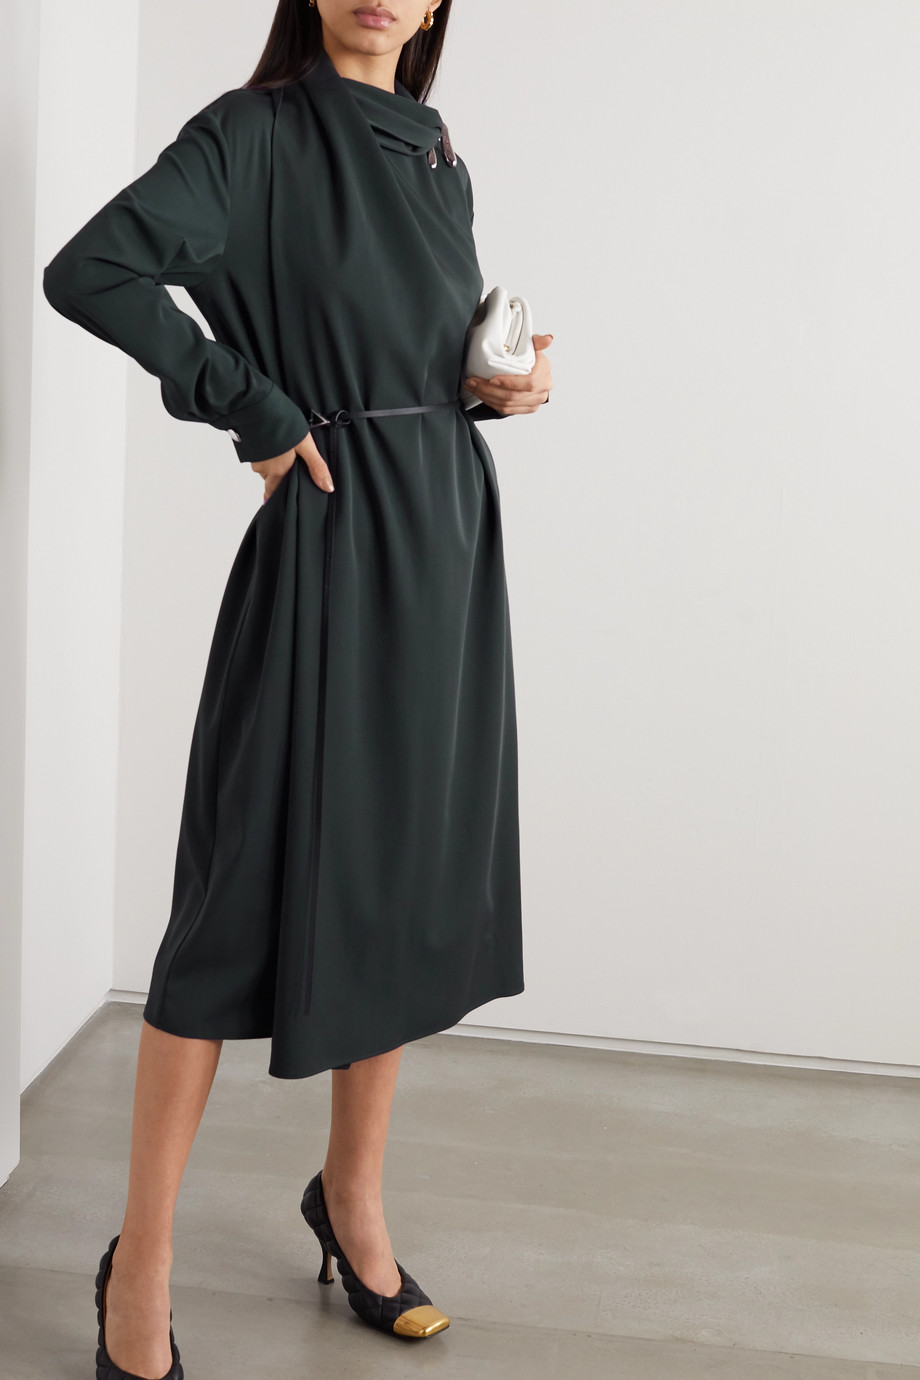 Bottega Veneta Belted embellished wool wrap dress